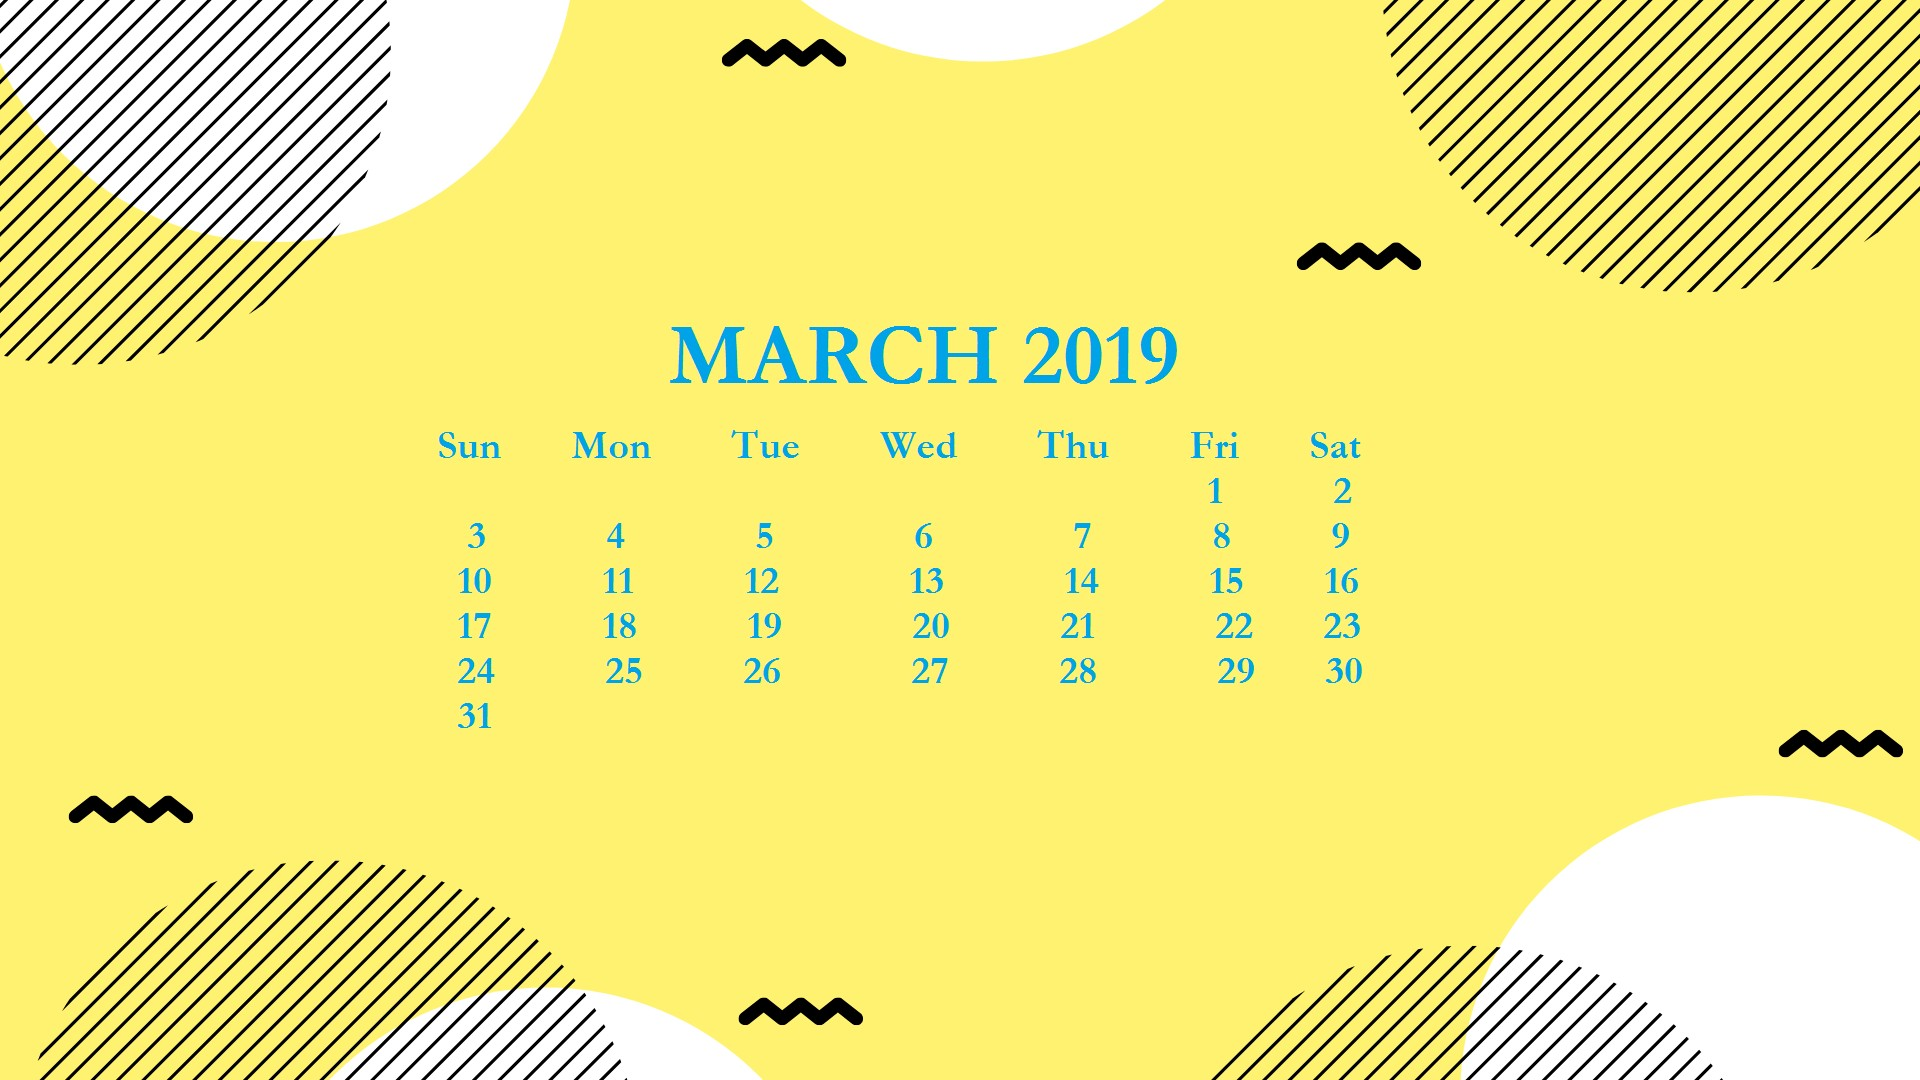 March 2019 Calendar Wallpaper for Desktop March2019 2019Calendar DesktopCalendar